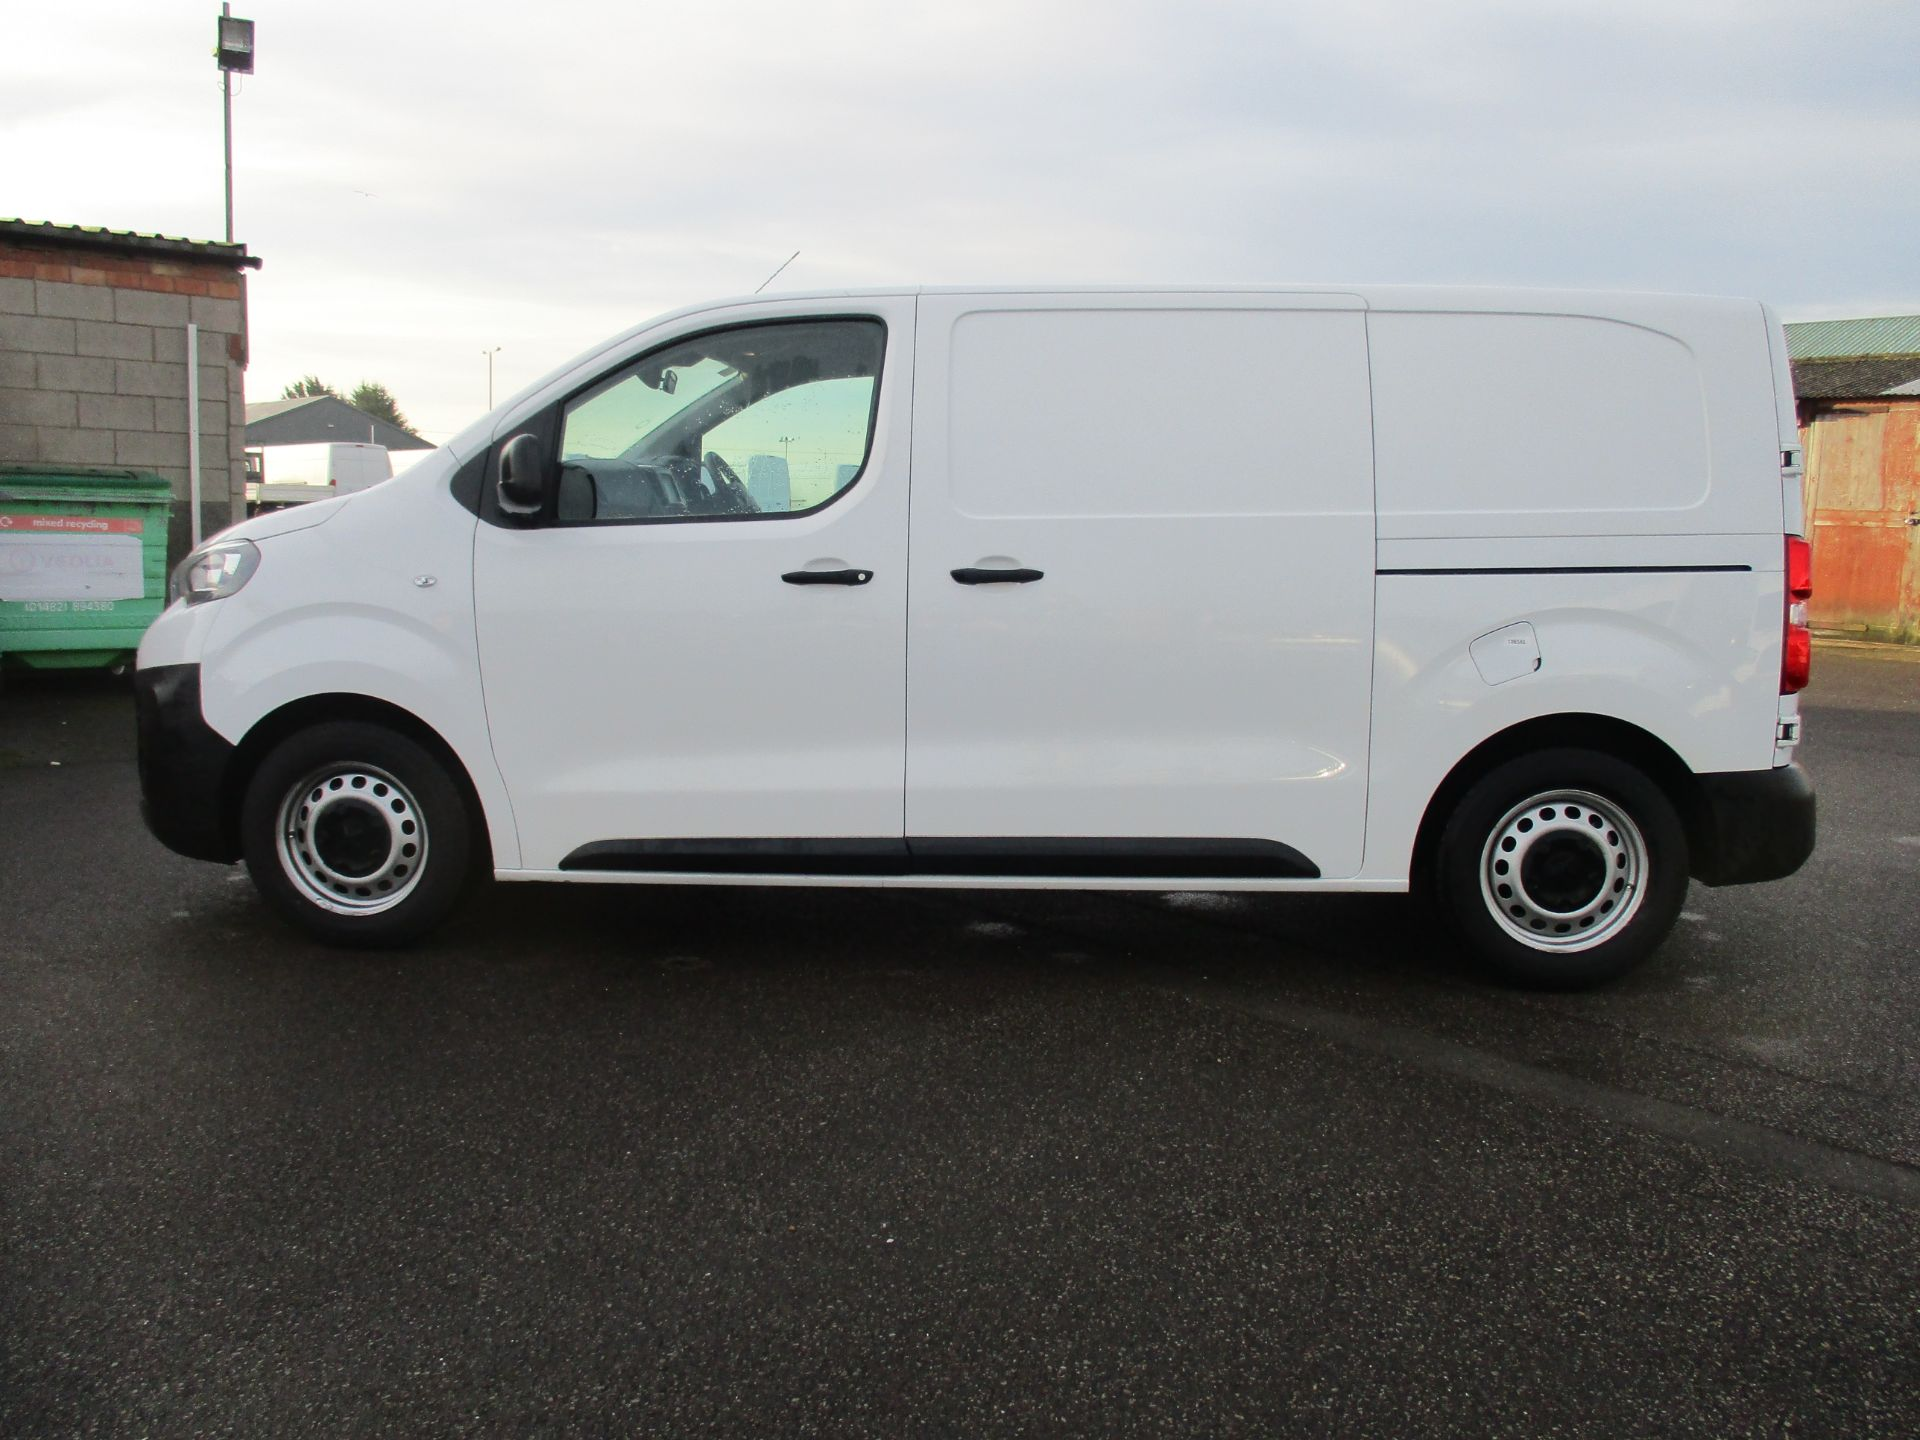 2018 Peugeot Expert STANDARD 1000 1.6 BLUE HDI 95 PROFESSIONAL EURO 6. AIR CON (NU68GHN) Image 8